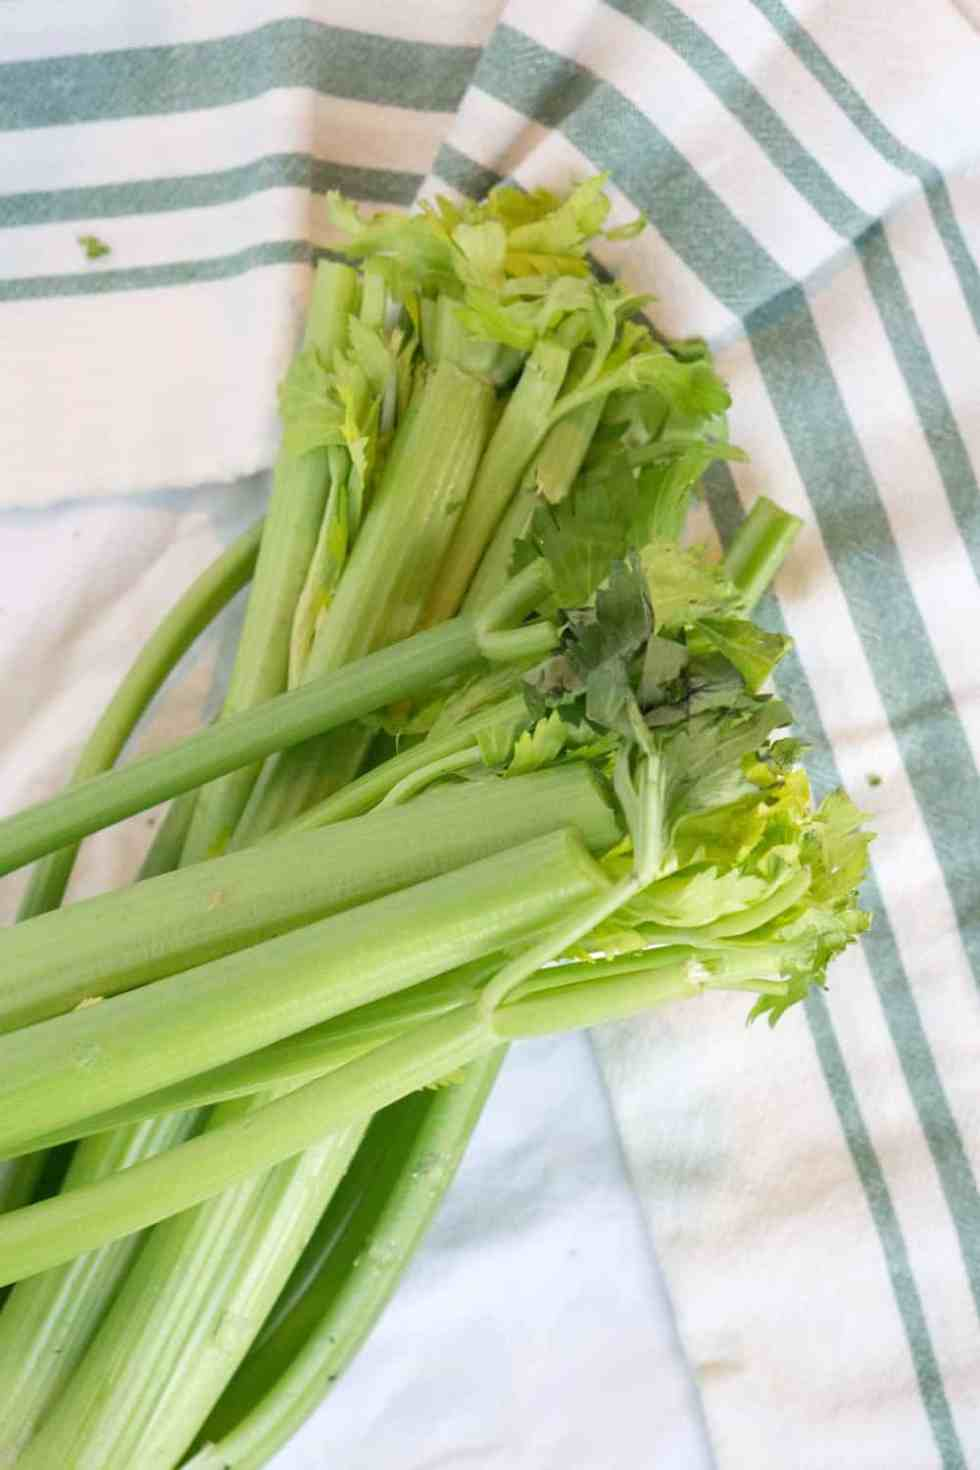 Celery: an affordable and nutritious snack. But how long is celery good for? And how should you be storing and purcahsing celery for the best bang for your buck?